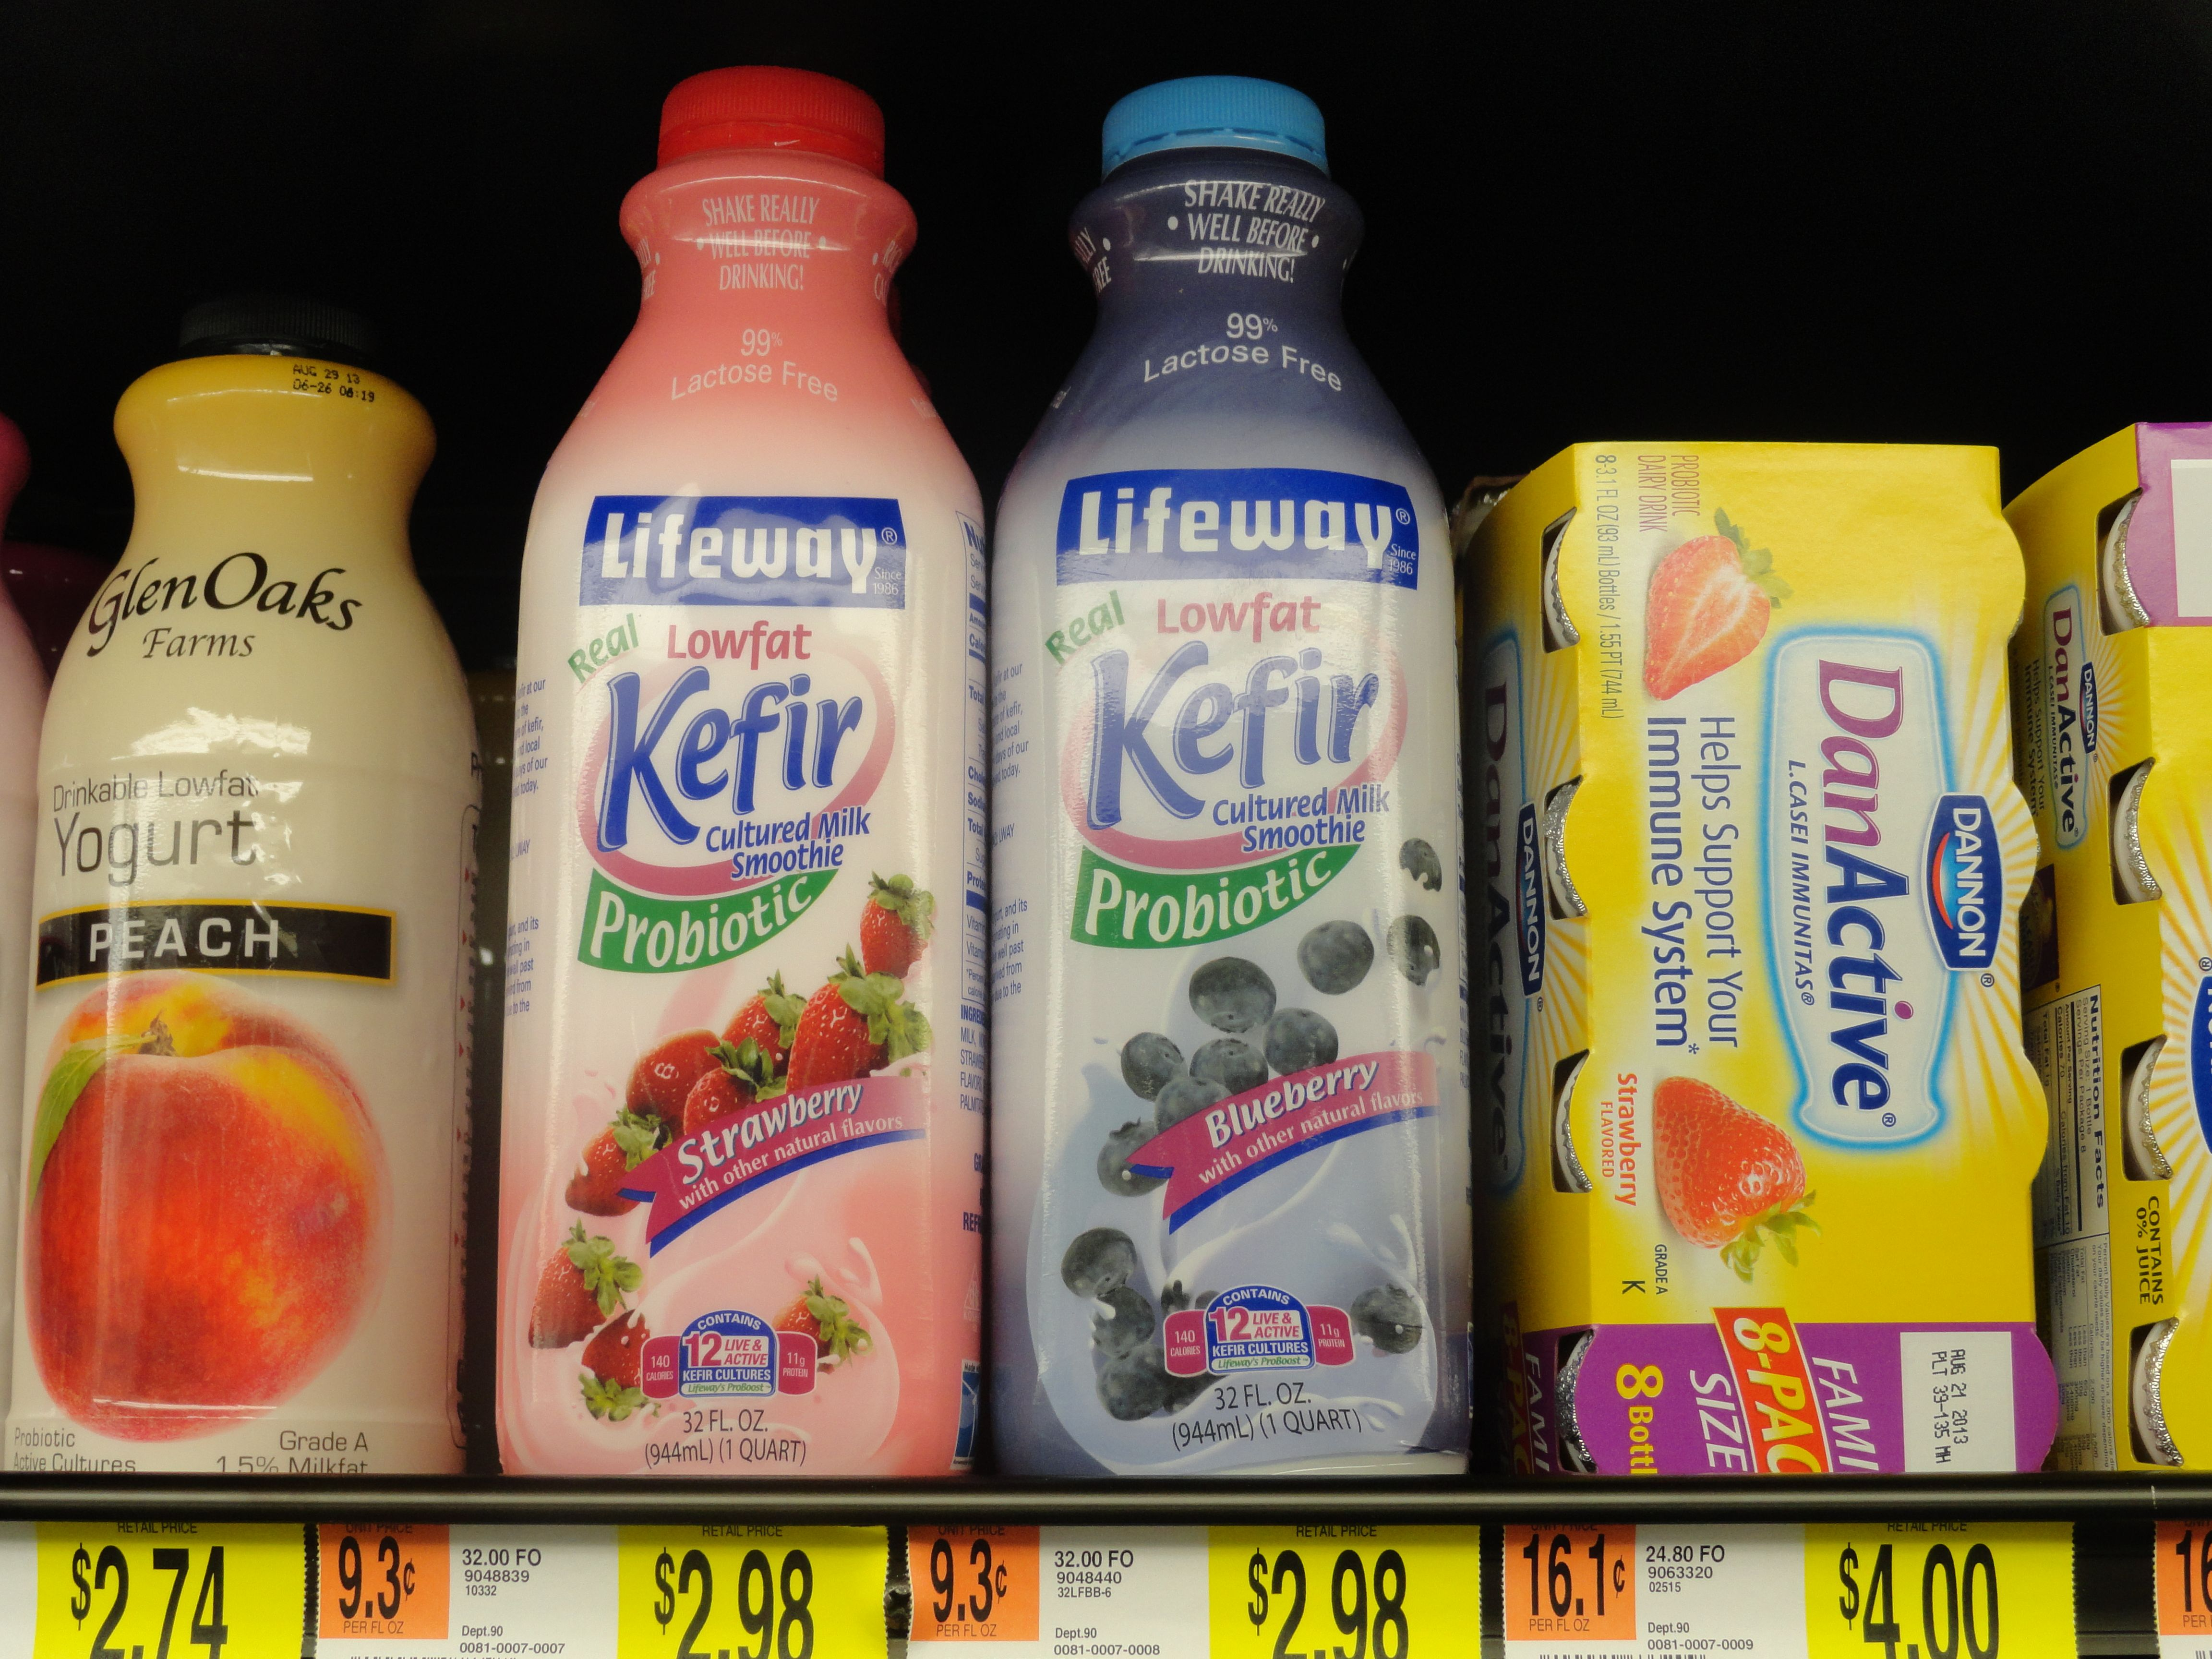 What Stores Sell Kefir